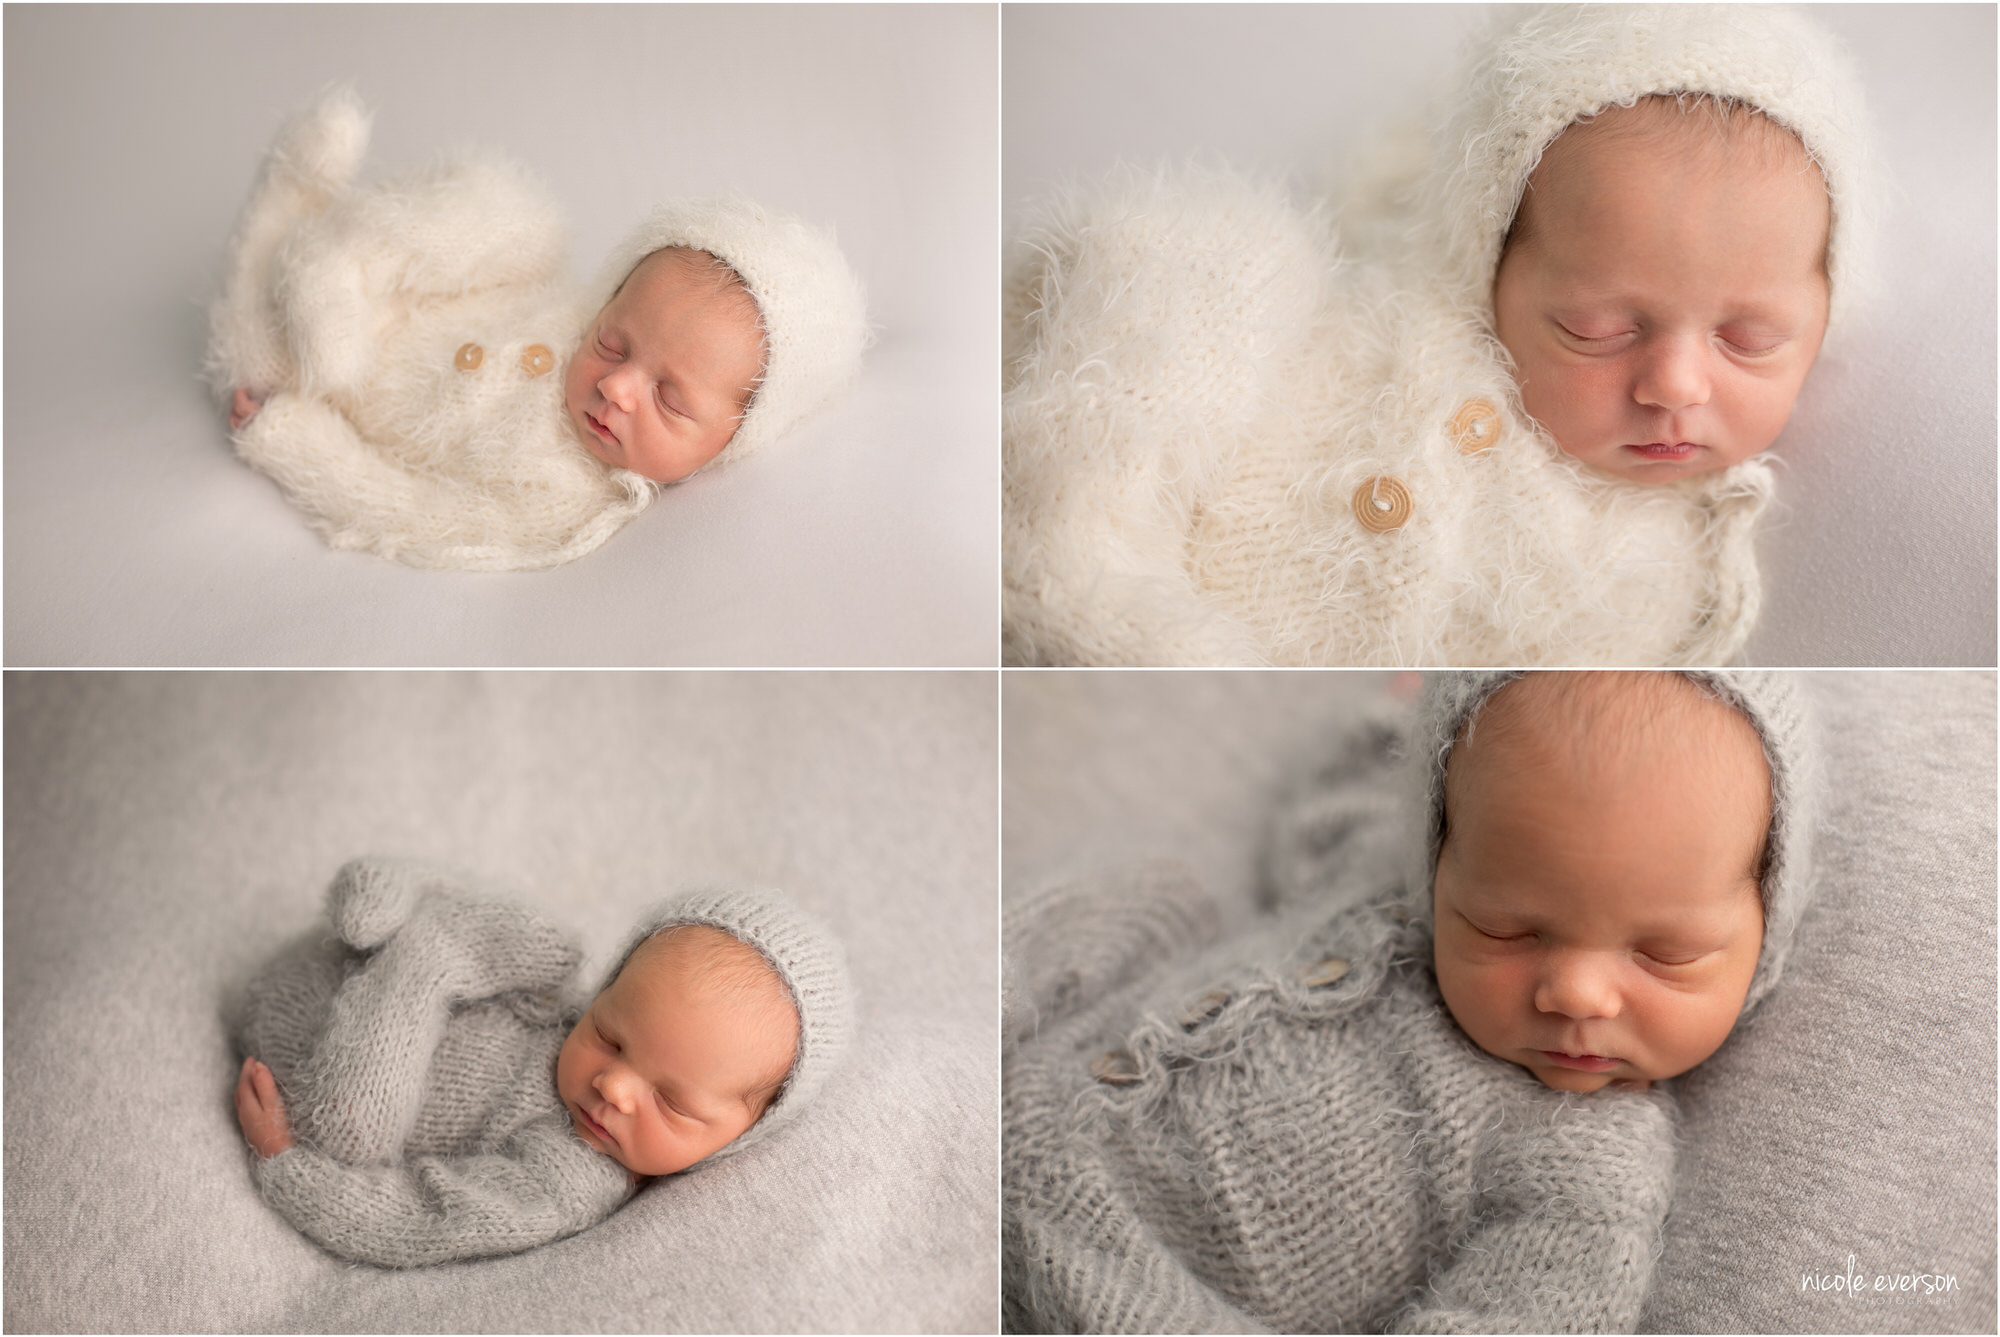 Twin baby boy in a fuzzy blue outfit. Twin baby girl in a fuzzy white outfit. Santa Rosa Newborn Photographer. Nicole Everson Photography.